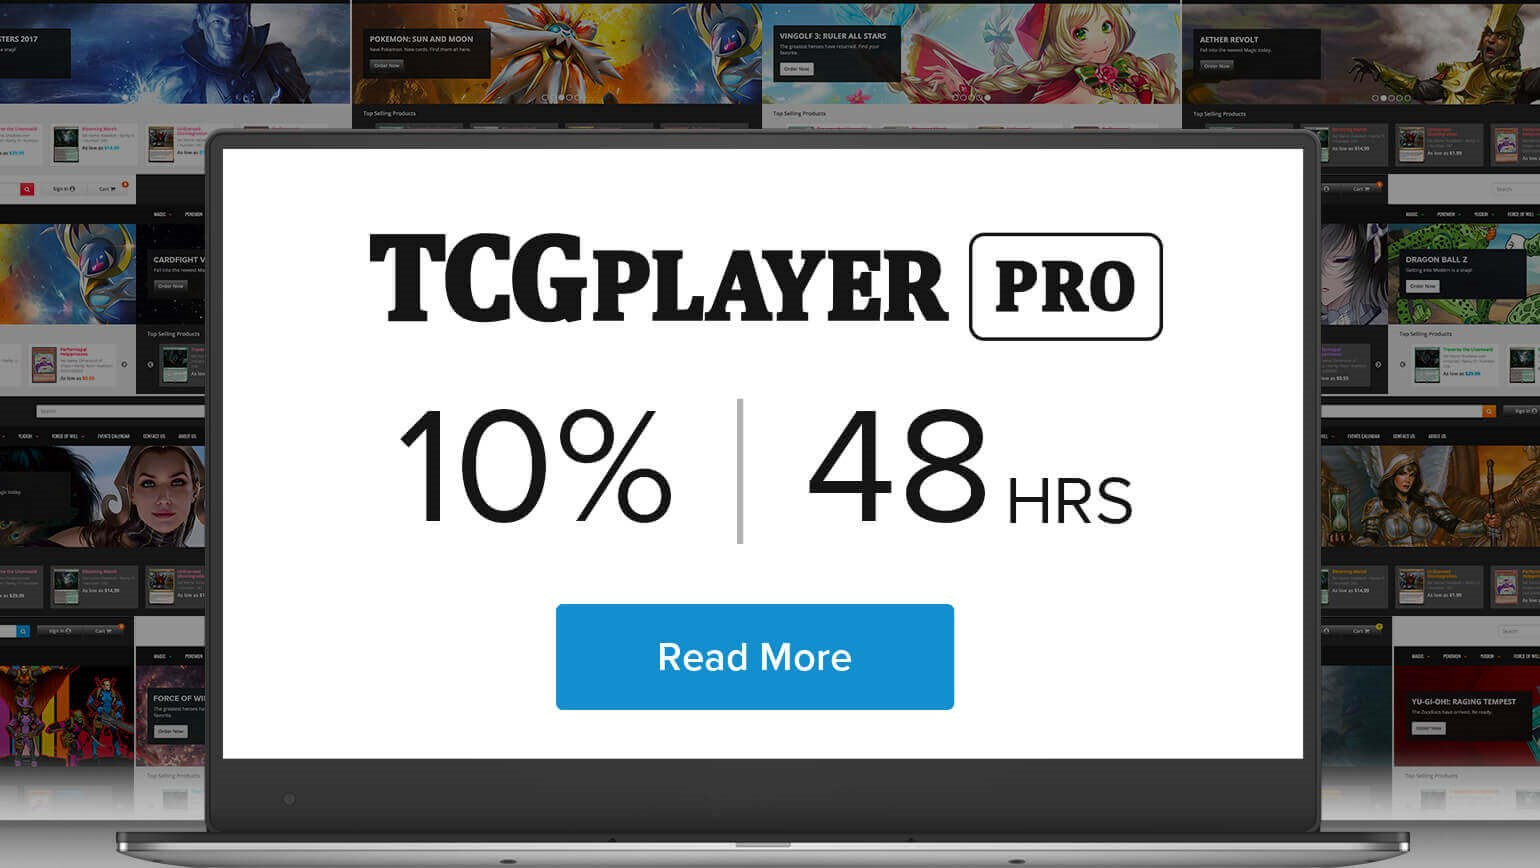 10% of Game Stores Join TCGplayer Pro